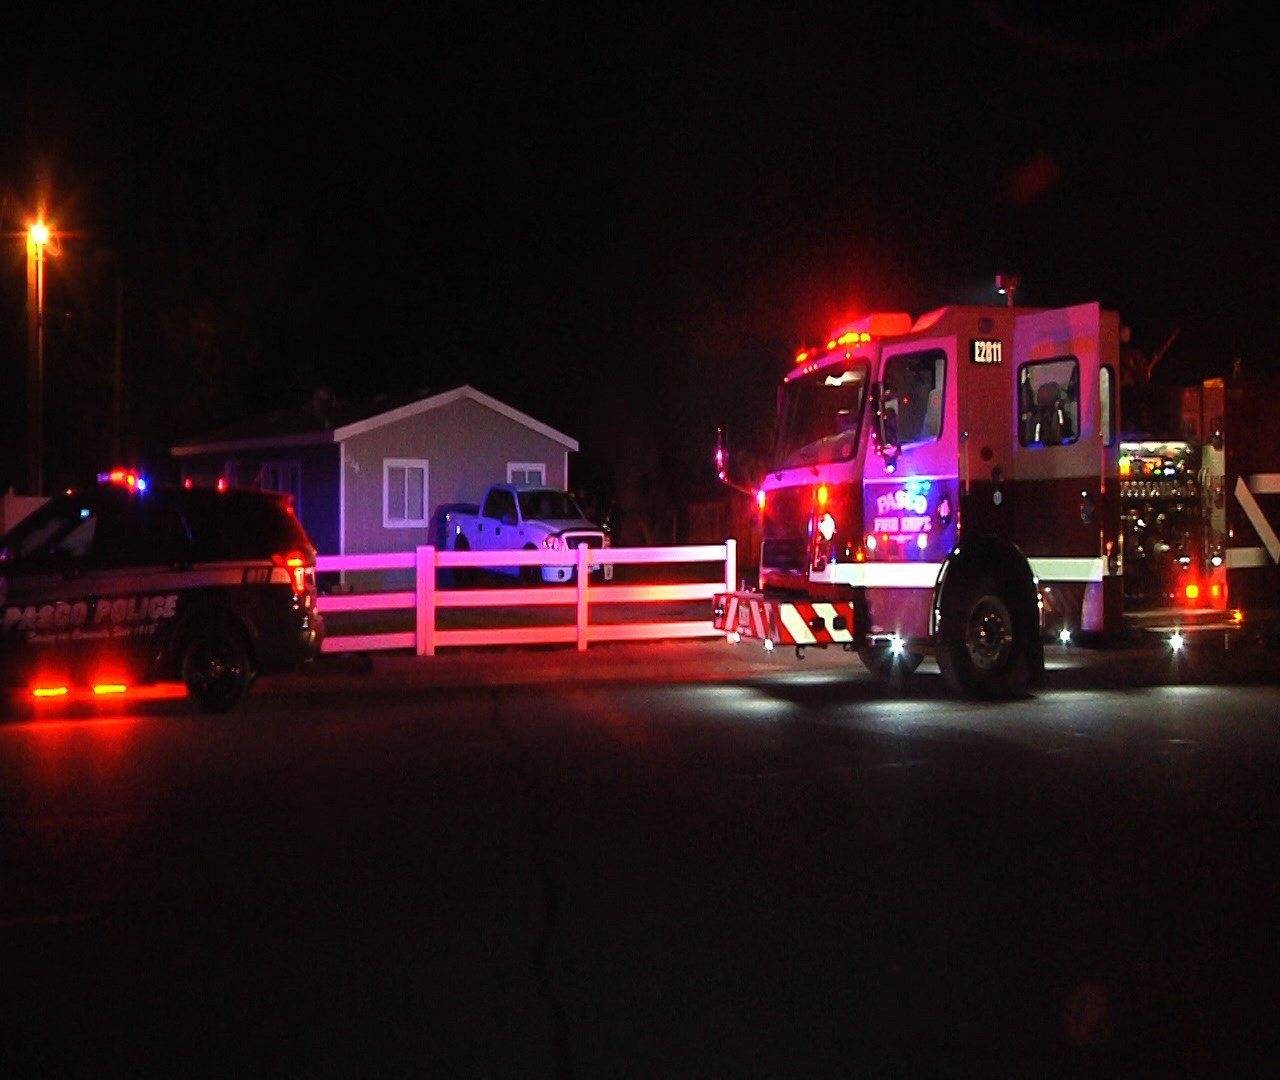 Pasco PD & FD on scene of a shed fire early morning 9/28/16